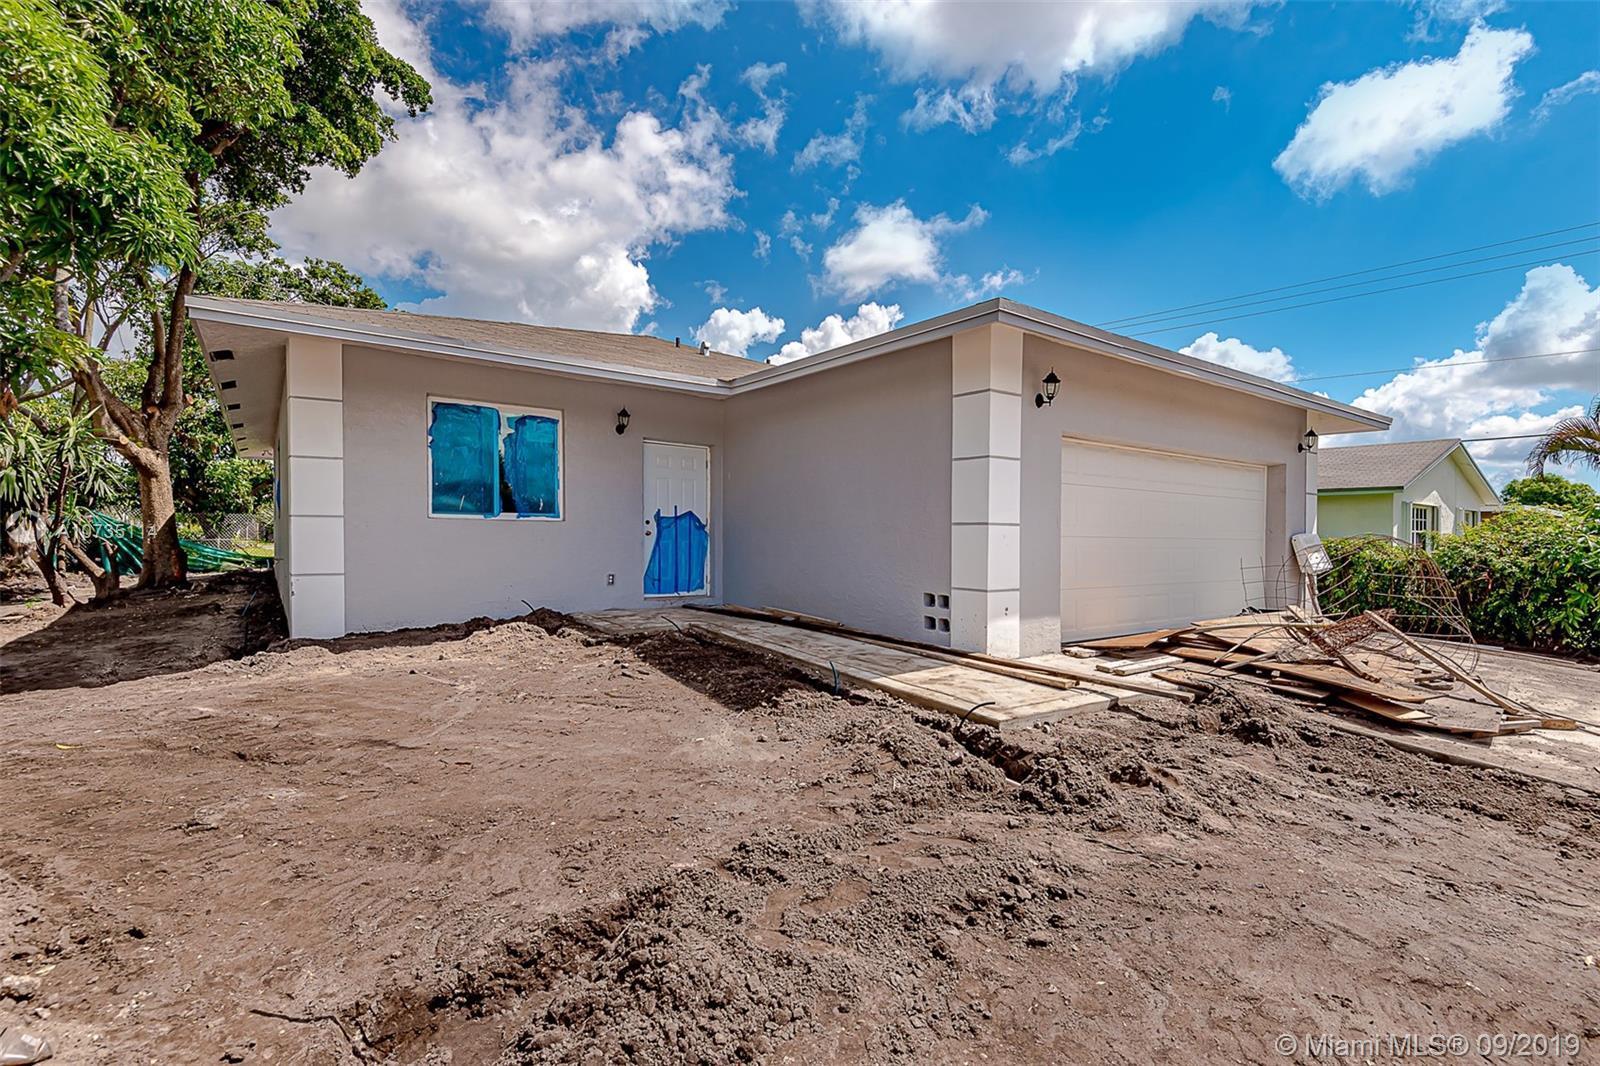 Brand New Spacious Home featuring 4 bedrooms and 2 and a half bath. 2 Car Garage. One bedroom does n